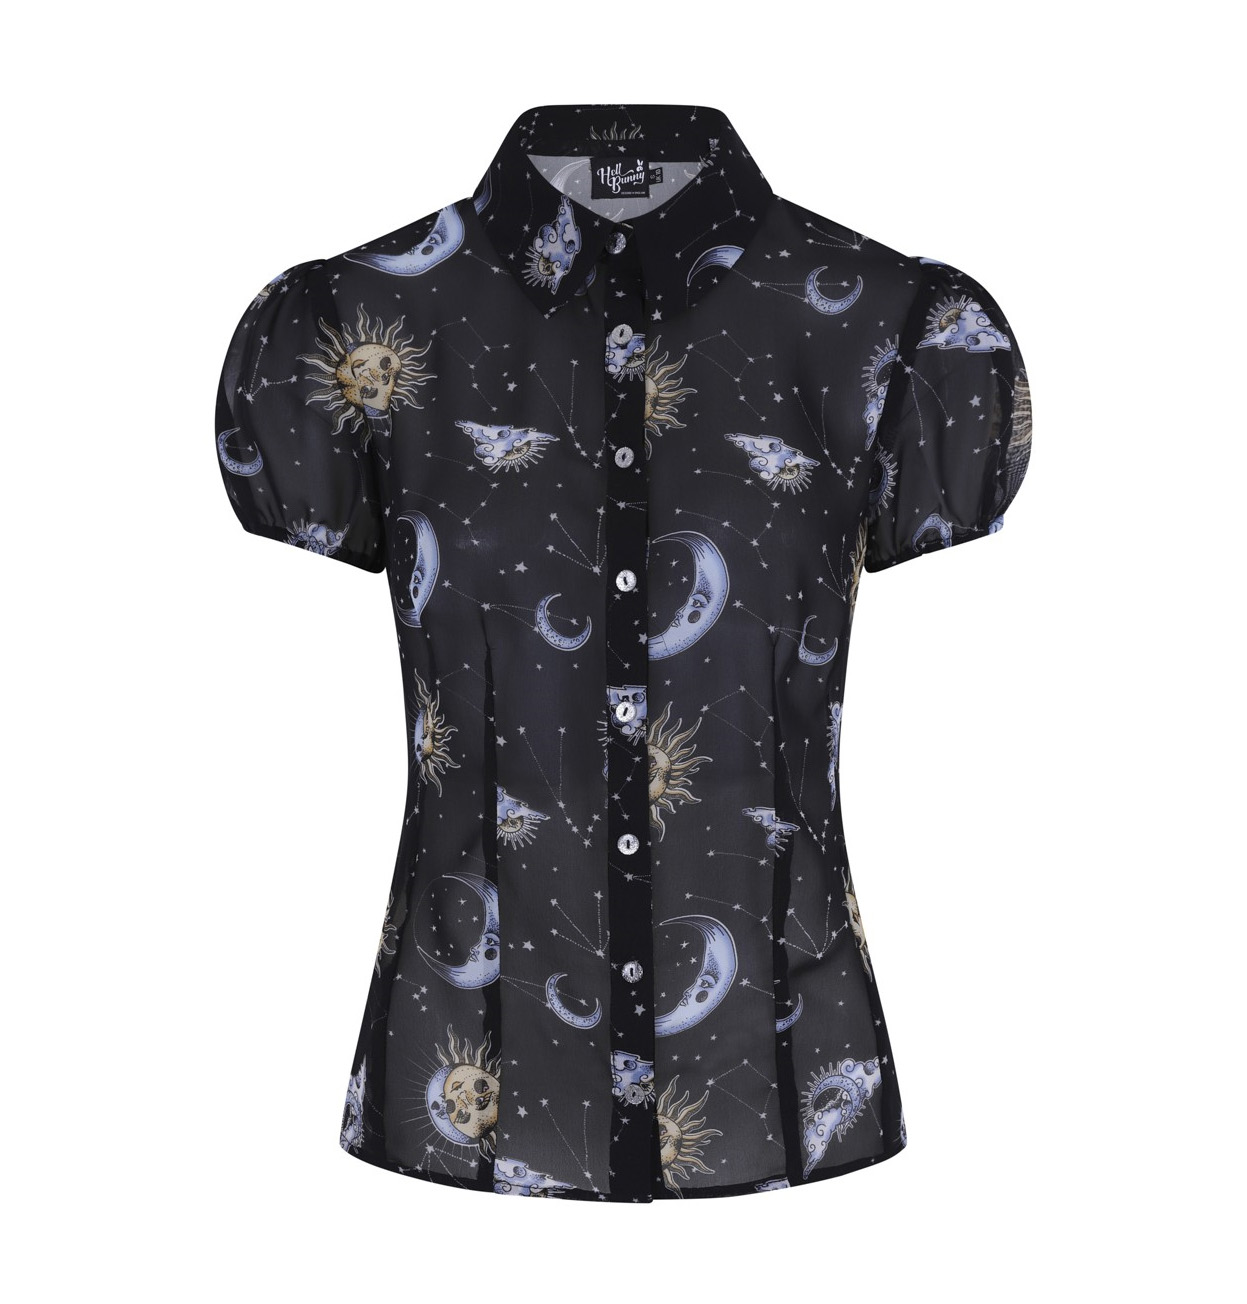 Hell-Bunny-50s-Shirt-Top-Gothic-Black-Sun-Moon-Stars-SOLARIS-Blouse-All-Sizes thumbnail 5